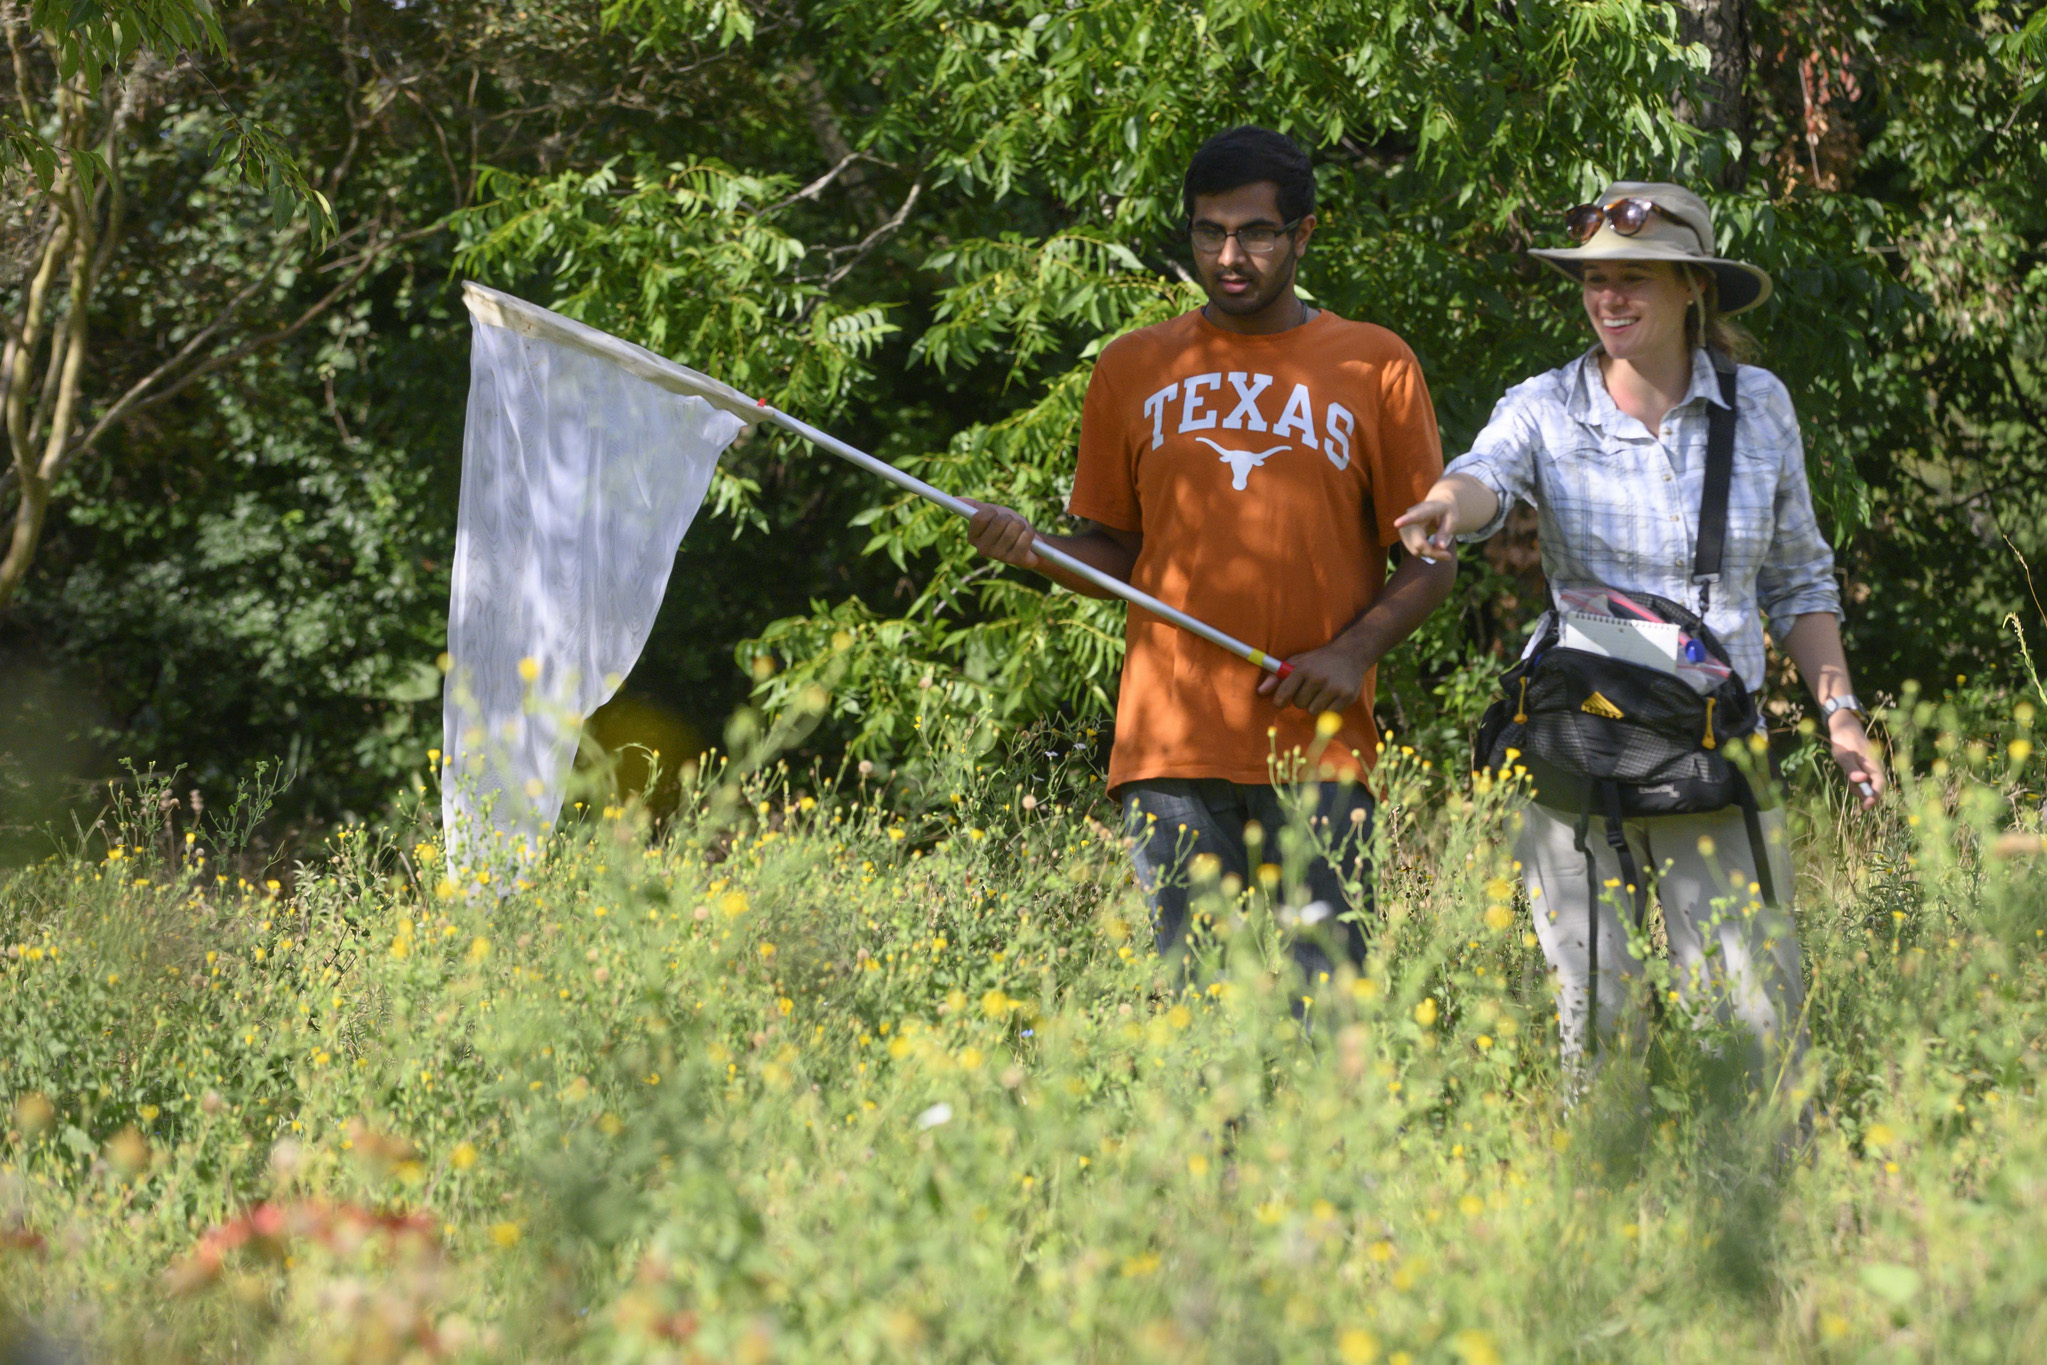 Freshman Research Initiatives pollinators 2019 The student is entering sophomore Sahran Hashim, shown here working with Professor Susan Cameron Devitt, at a site along Lady Bird Lake, west of Lamar Blvd. The student has a model release on file in University Communications for this story and any future, non-commercial use by UT.